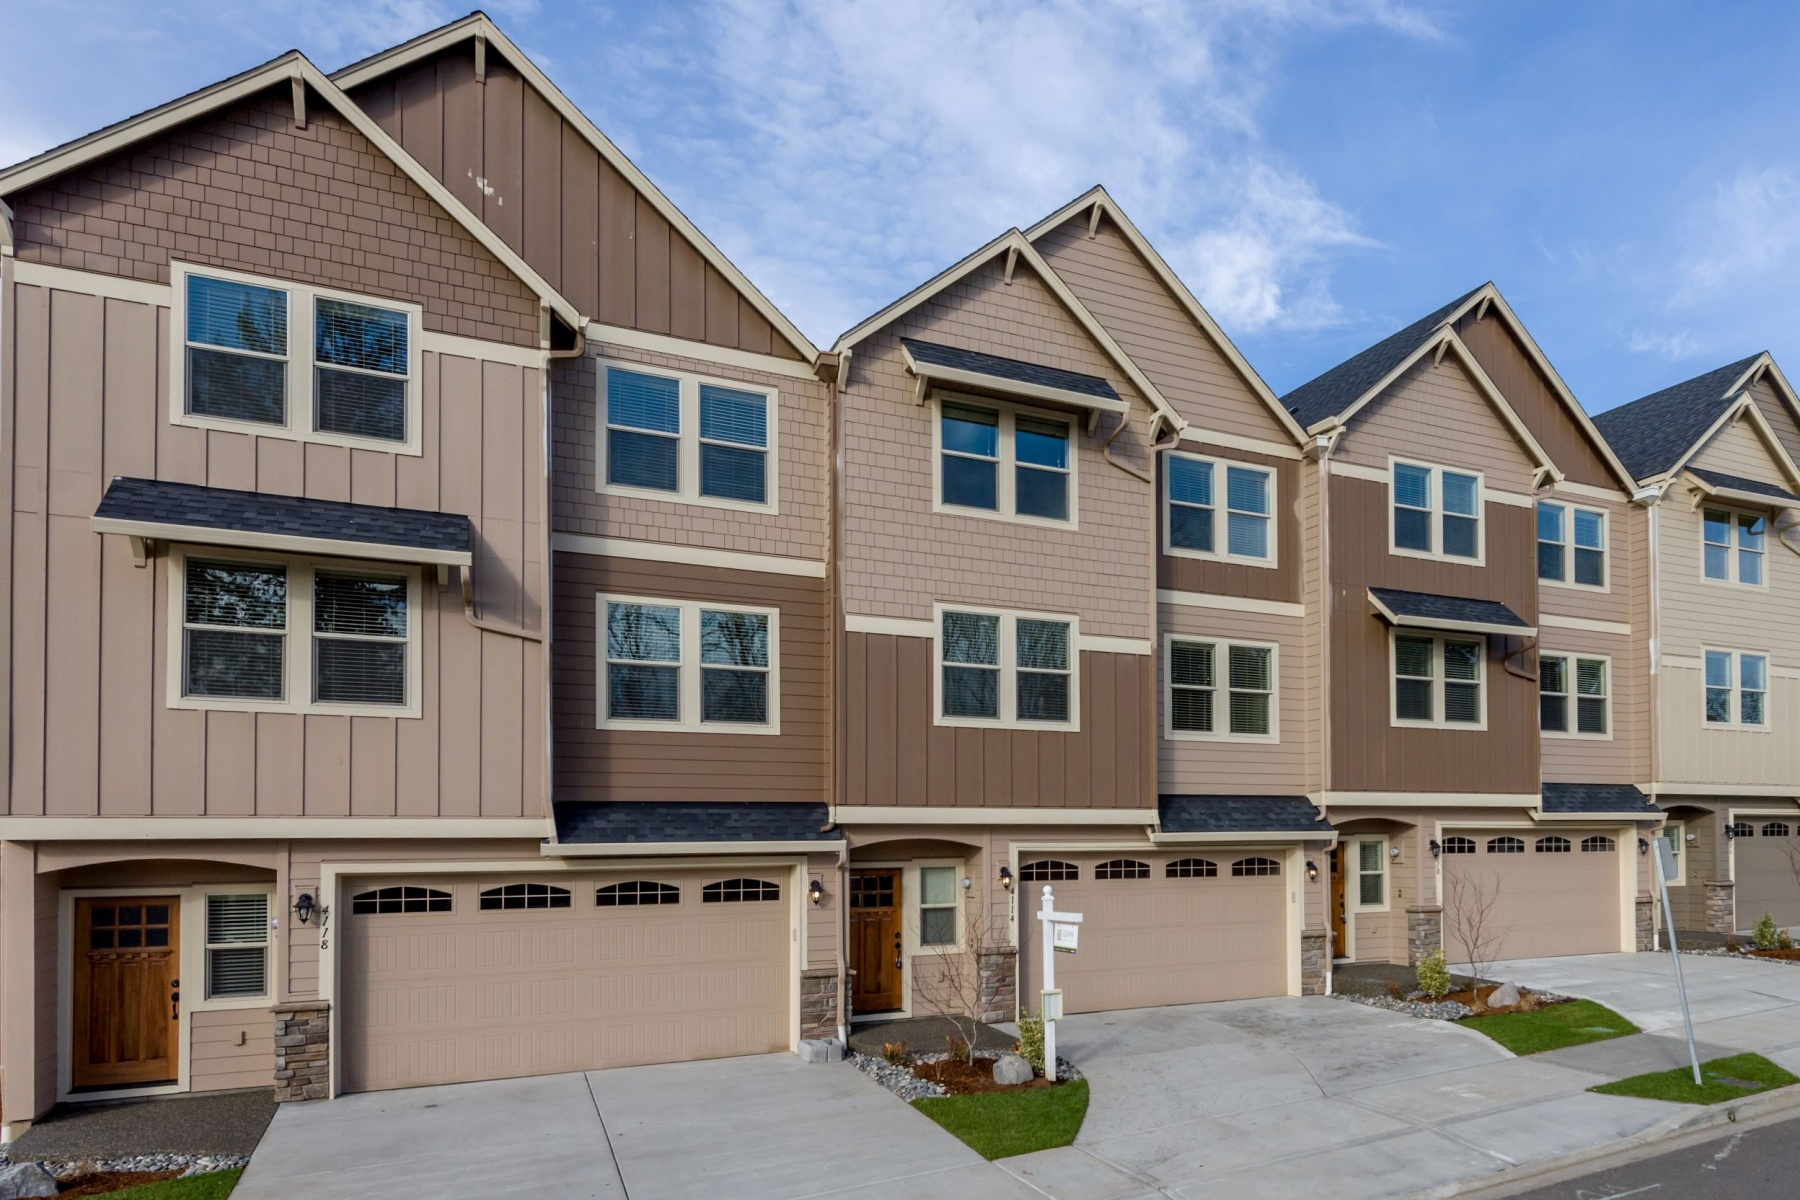 Single Family Home for Sale at Great New Gated Community! 4320 NW Sage Loop Camas, Washington 98607 United States